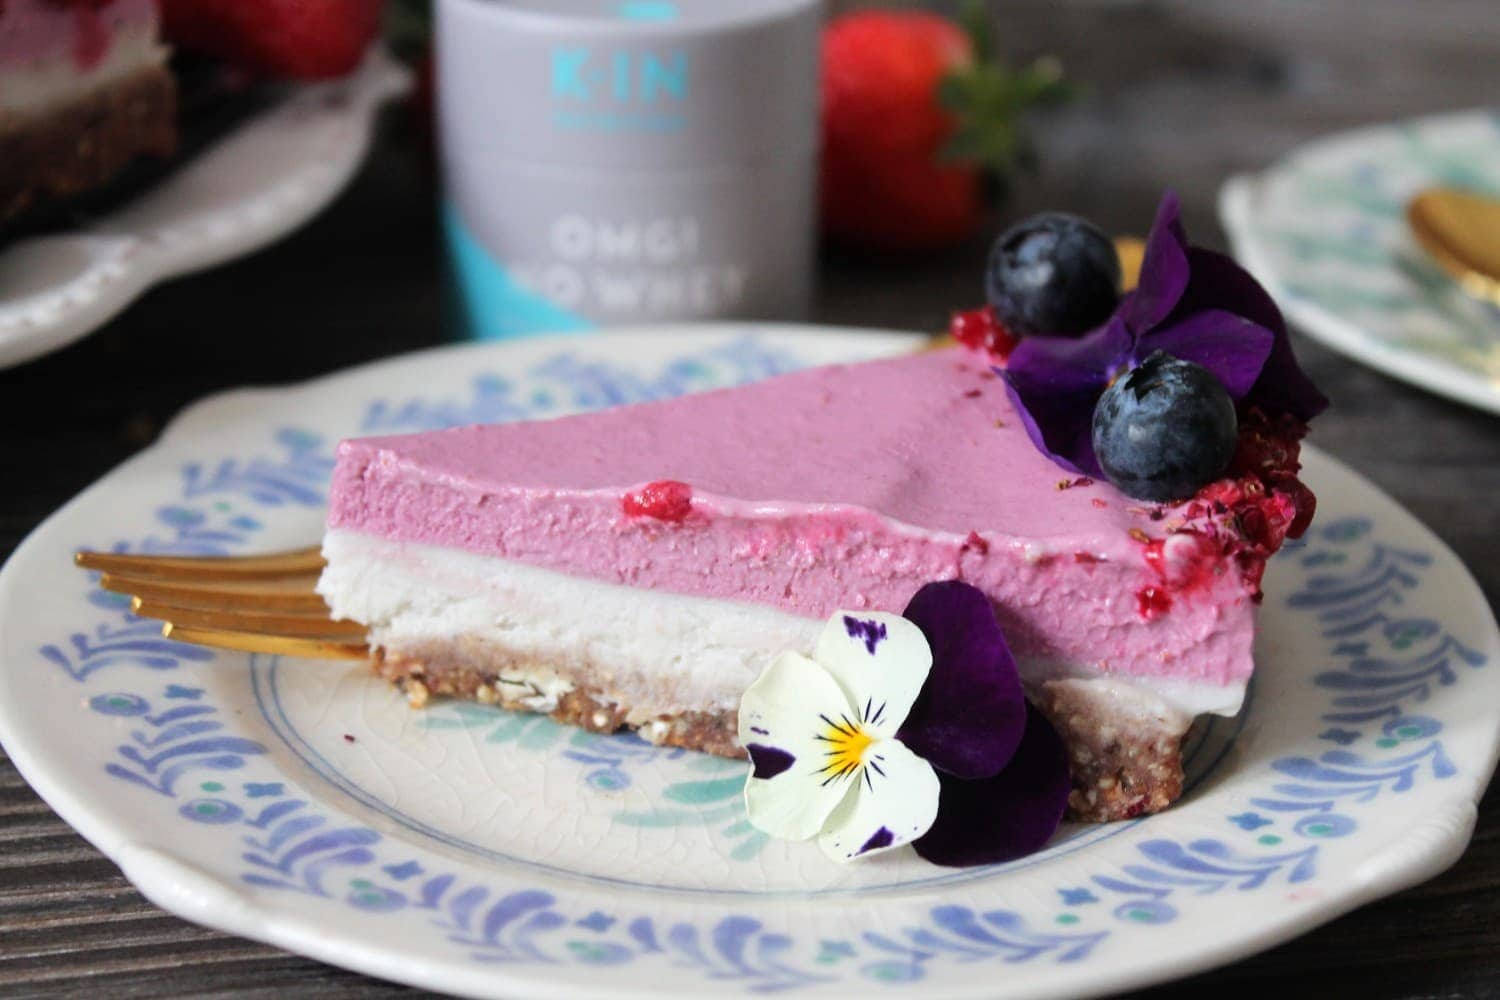 Superfoodio Protein Cheesecake recipe